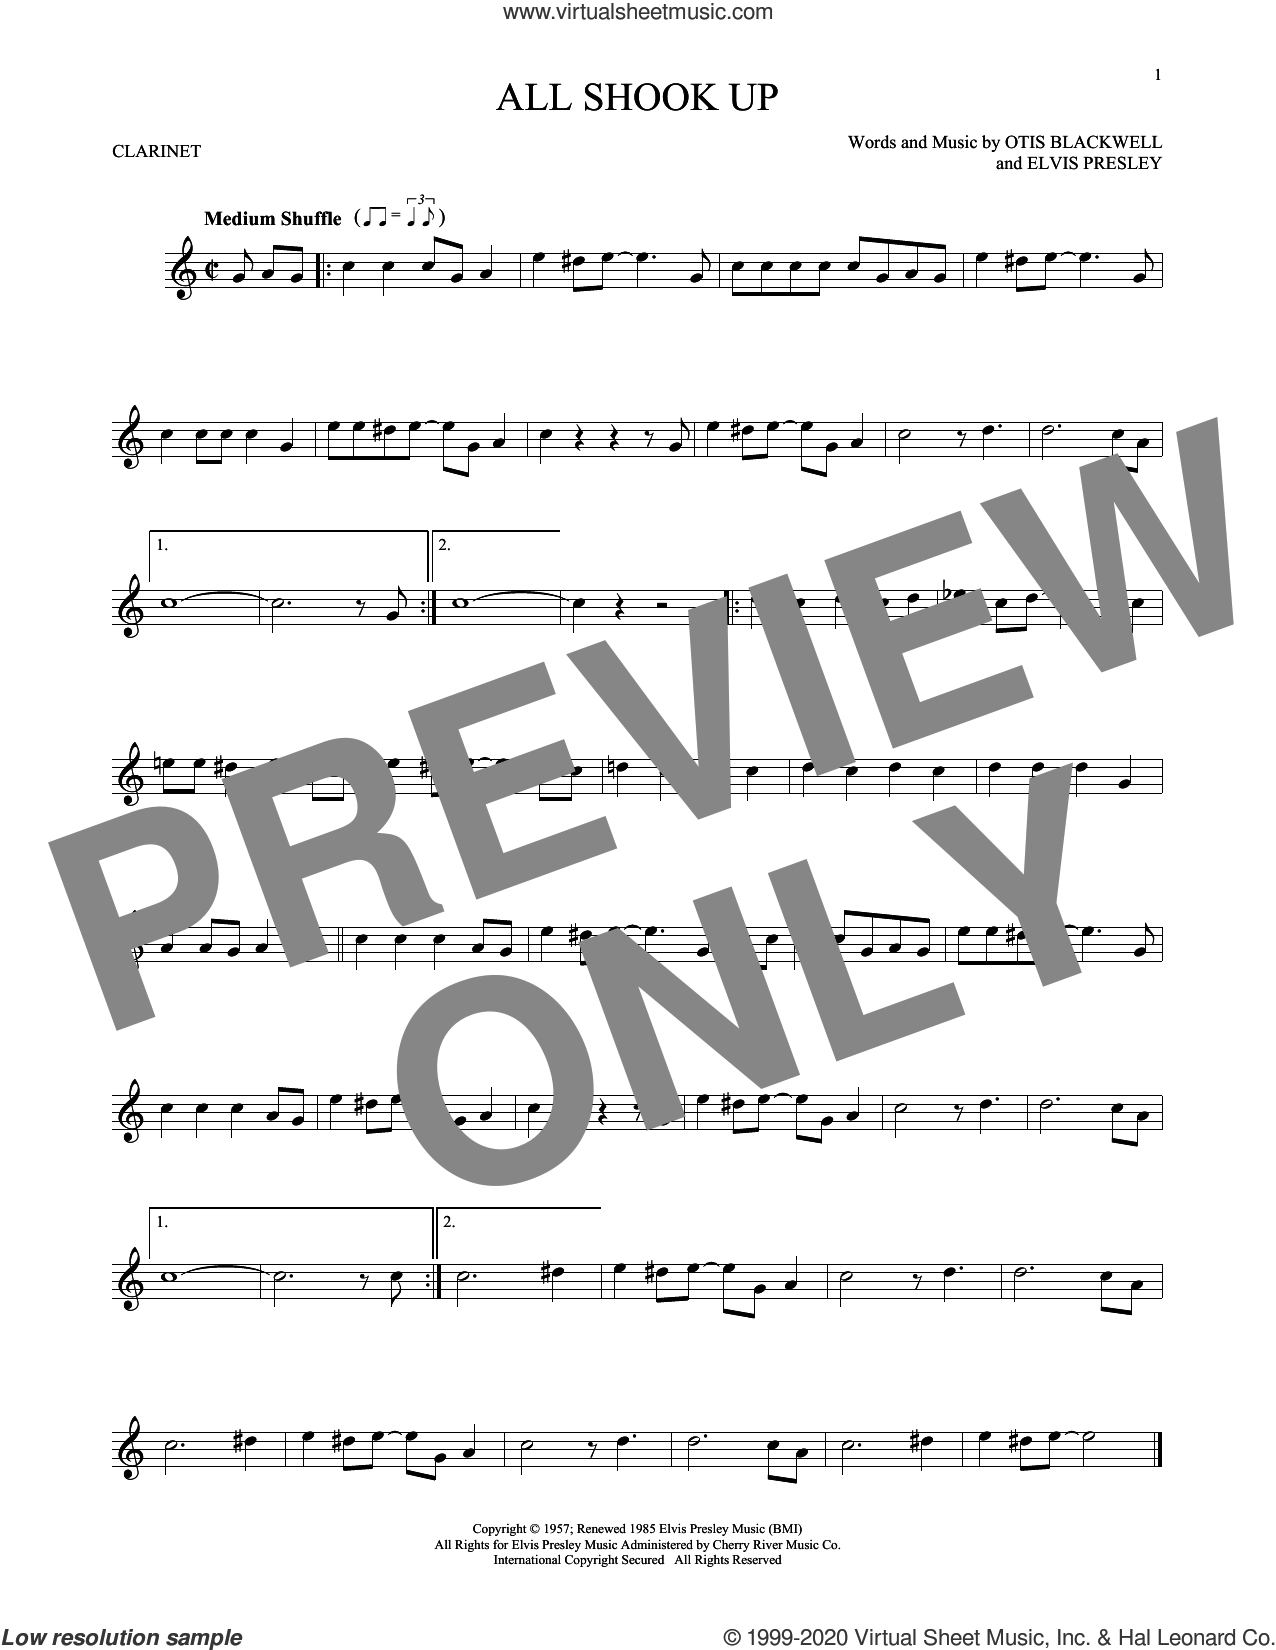 All Shook Up sheet music for clarinet solo by Elvis Presley, Suzi Quatro and Otis Blackwell, intermediate skill level